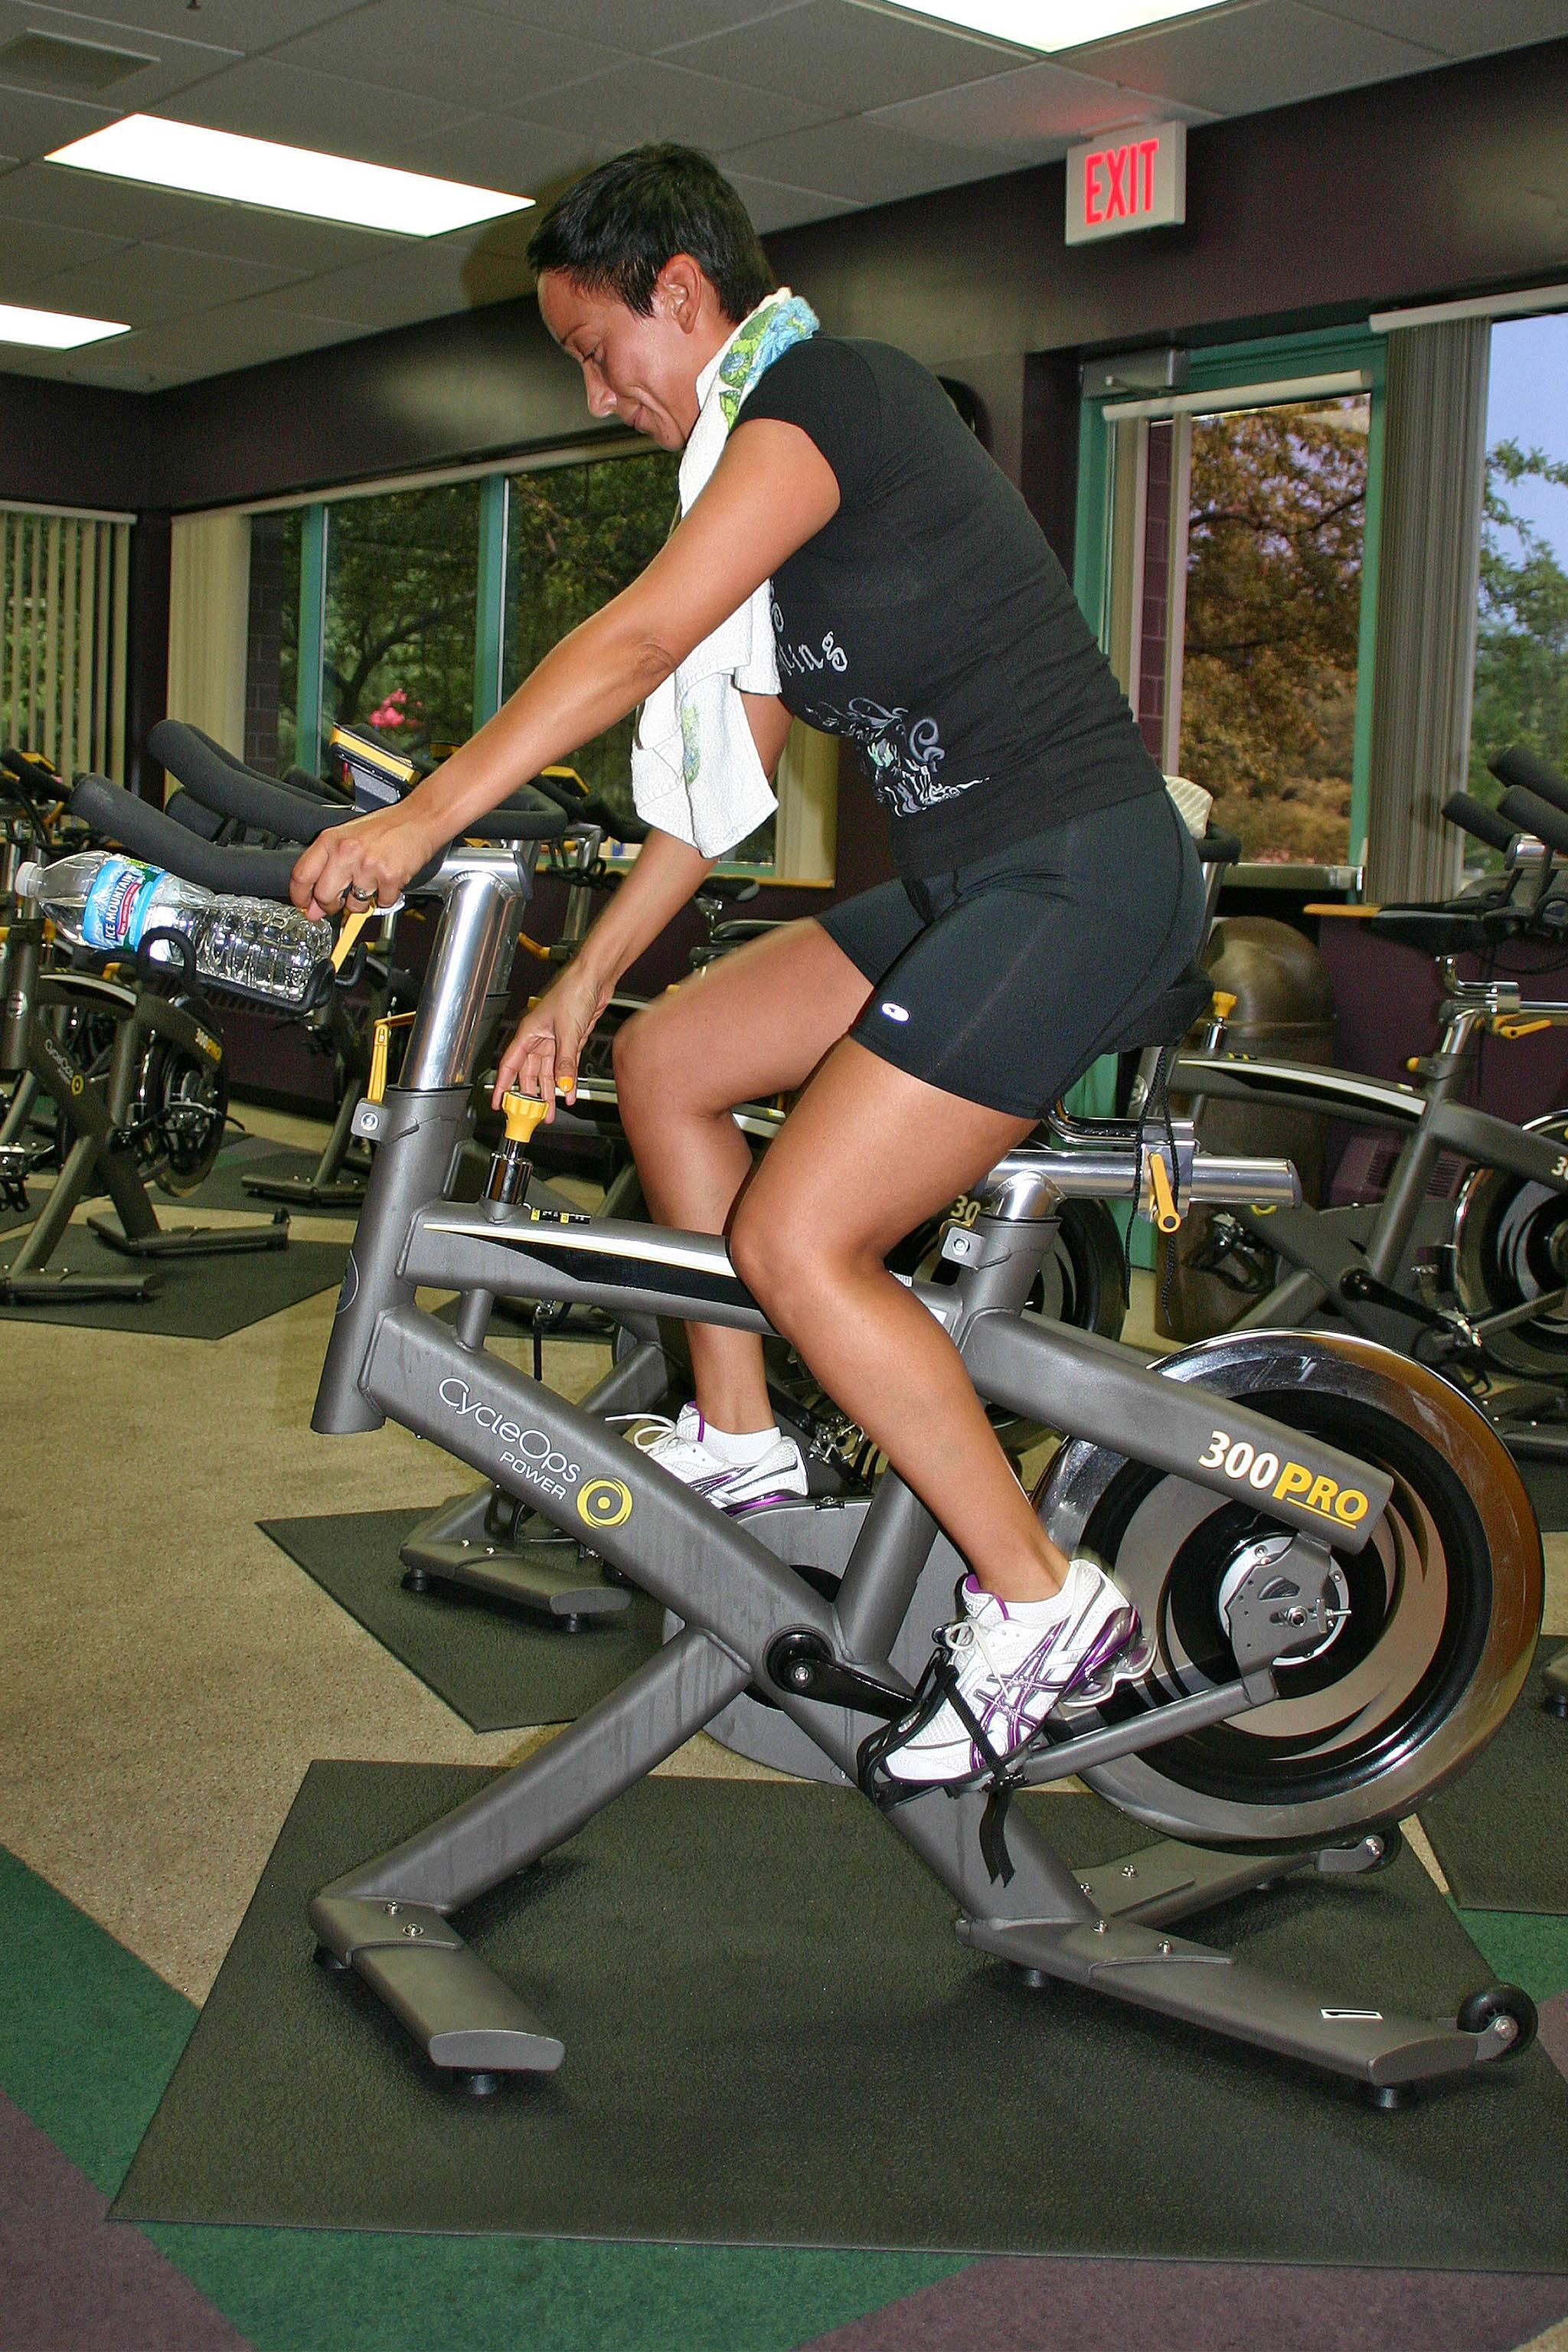 There will also be a Cycling Open House at 6:00pm and free cycling classes at 6:00am and 6:30pm at Prairie Lakes Community Center on September 5.